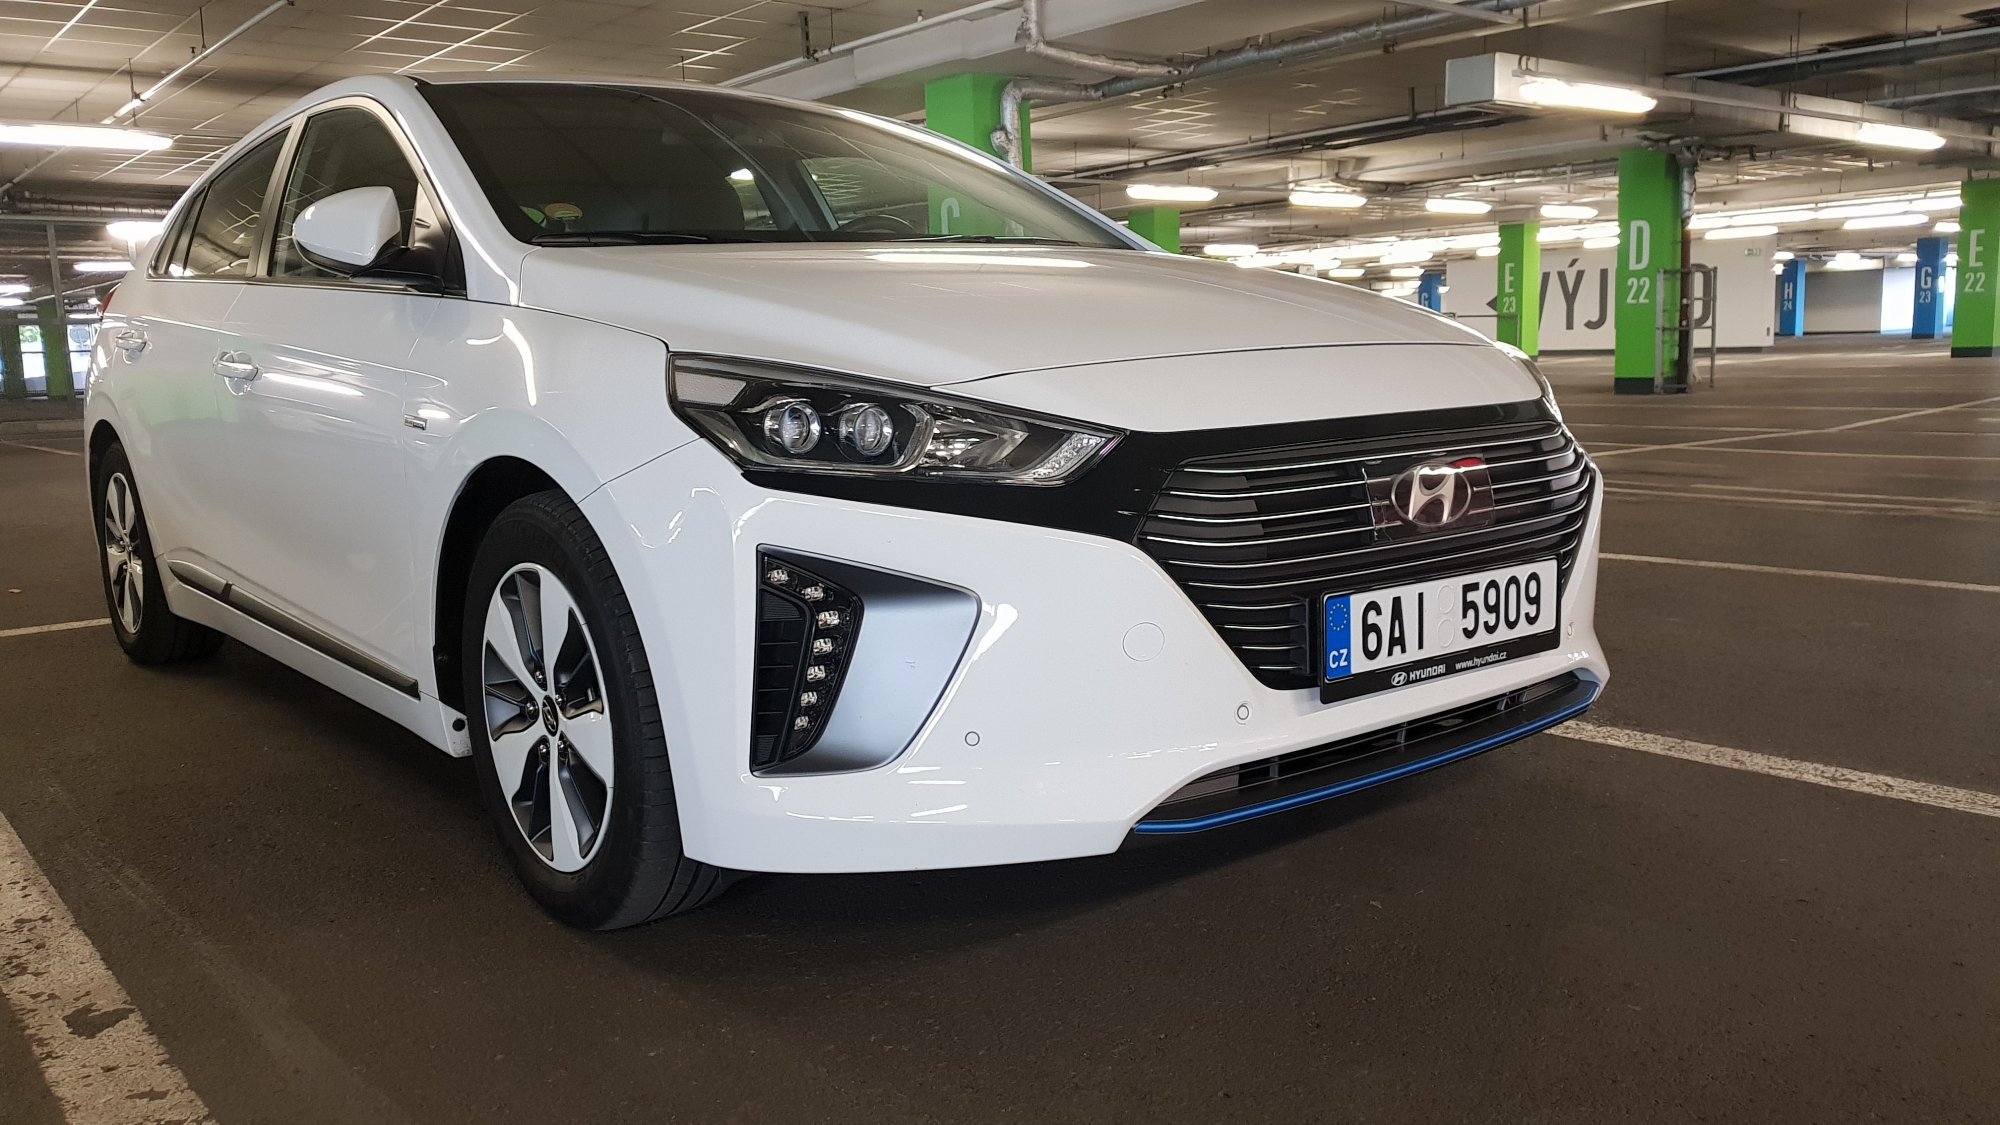 test hyundai ioniq plug in hybrid vs hybrid testy ojet ch aut recenze nov ch aut. Black Bedroom Furniture Sets. Home Design Ideas